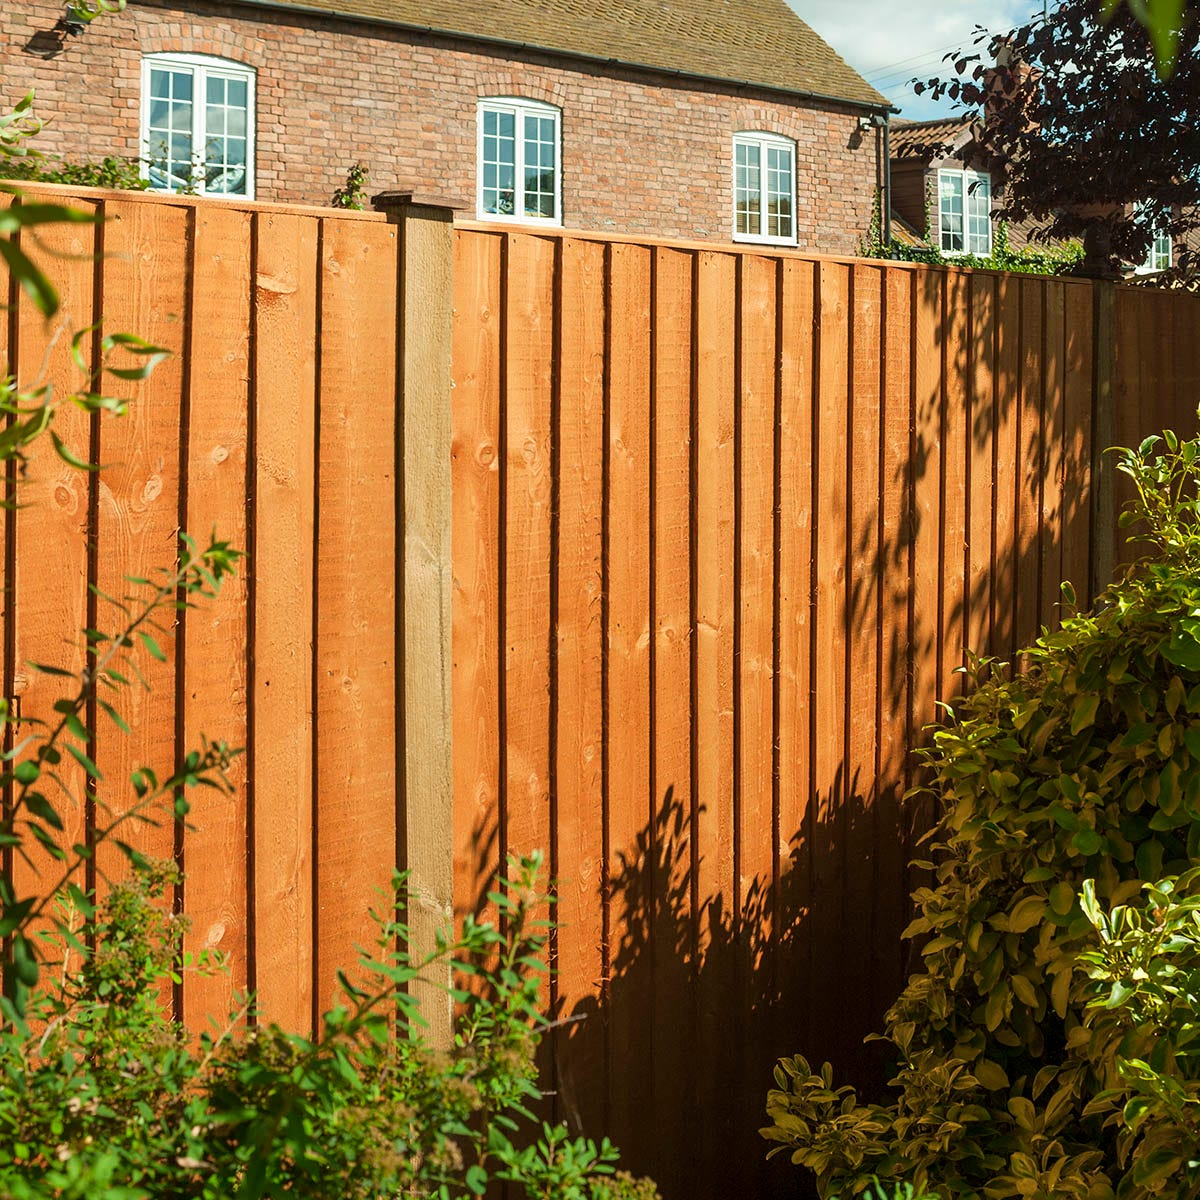 Rowlinson 3pk Vertical Board Panel Dipped Fence - 6x3